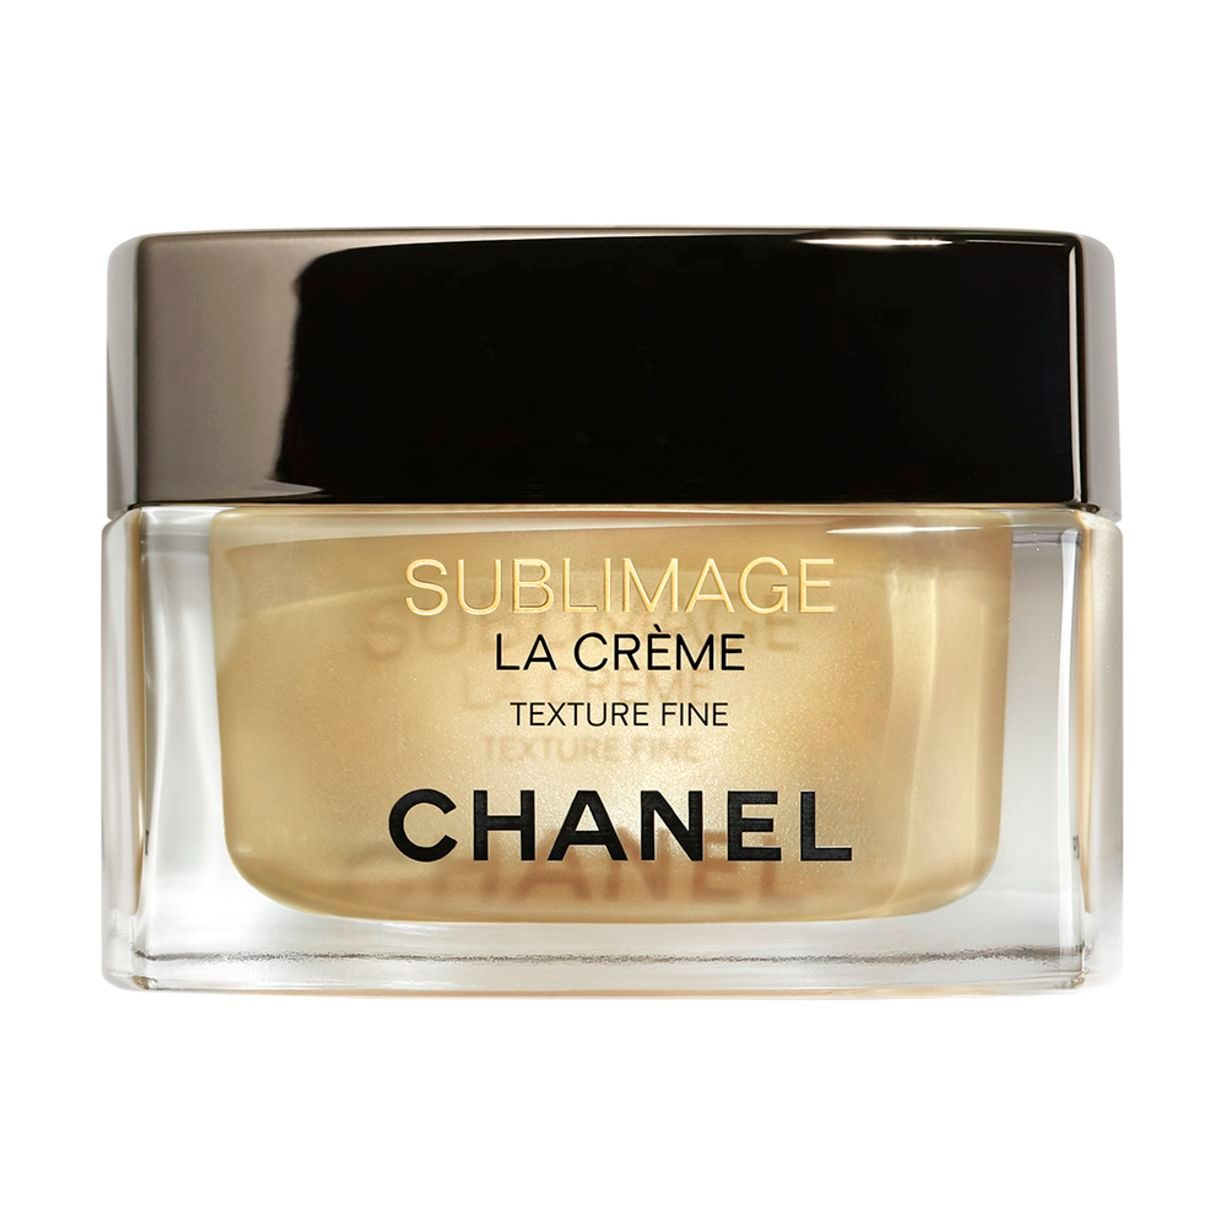 SUBLIMAGE LA CRÈME ULTIMATE SKIN REVITALIZATION - TEXTURE FINE JAR 50G